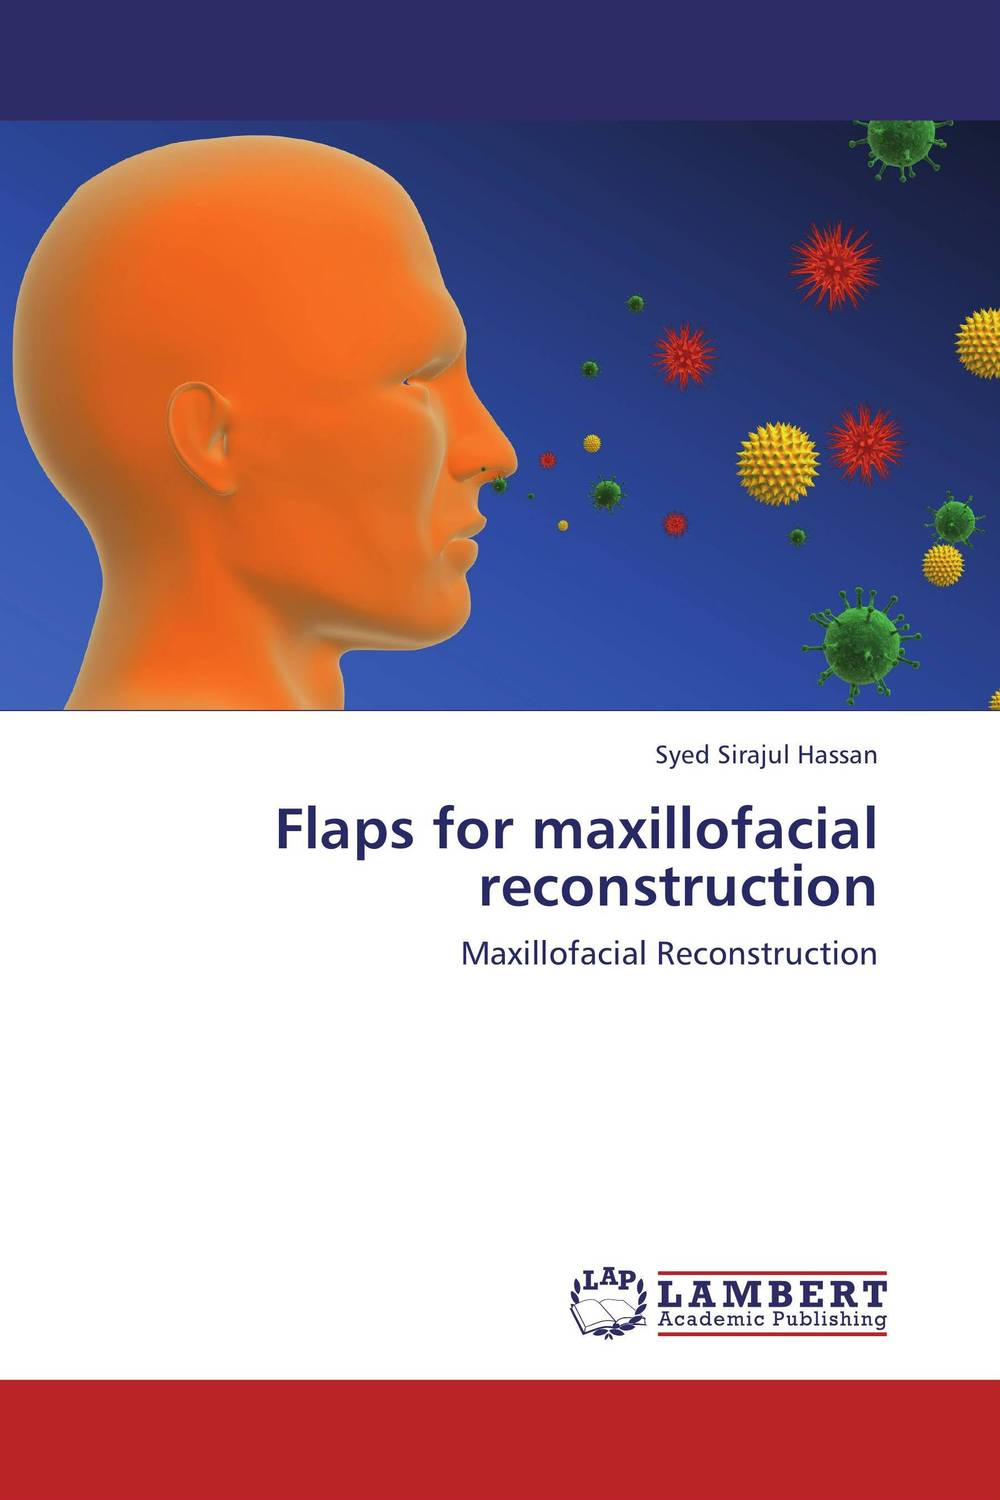 Flaps for maxillofacial reconstruction o reilly product defects